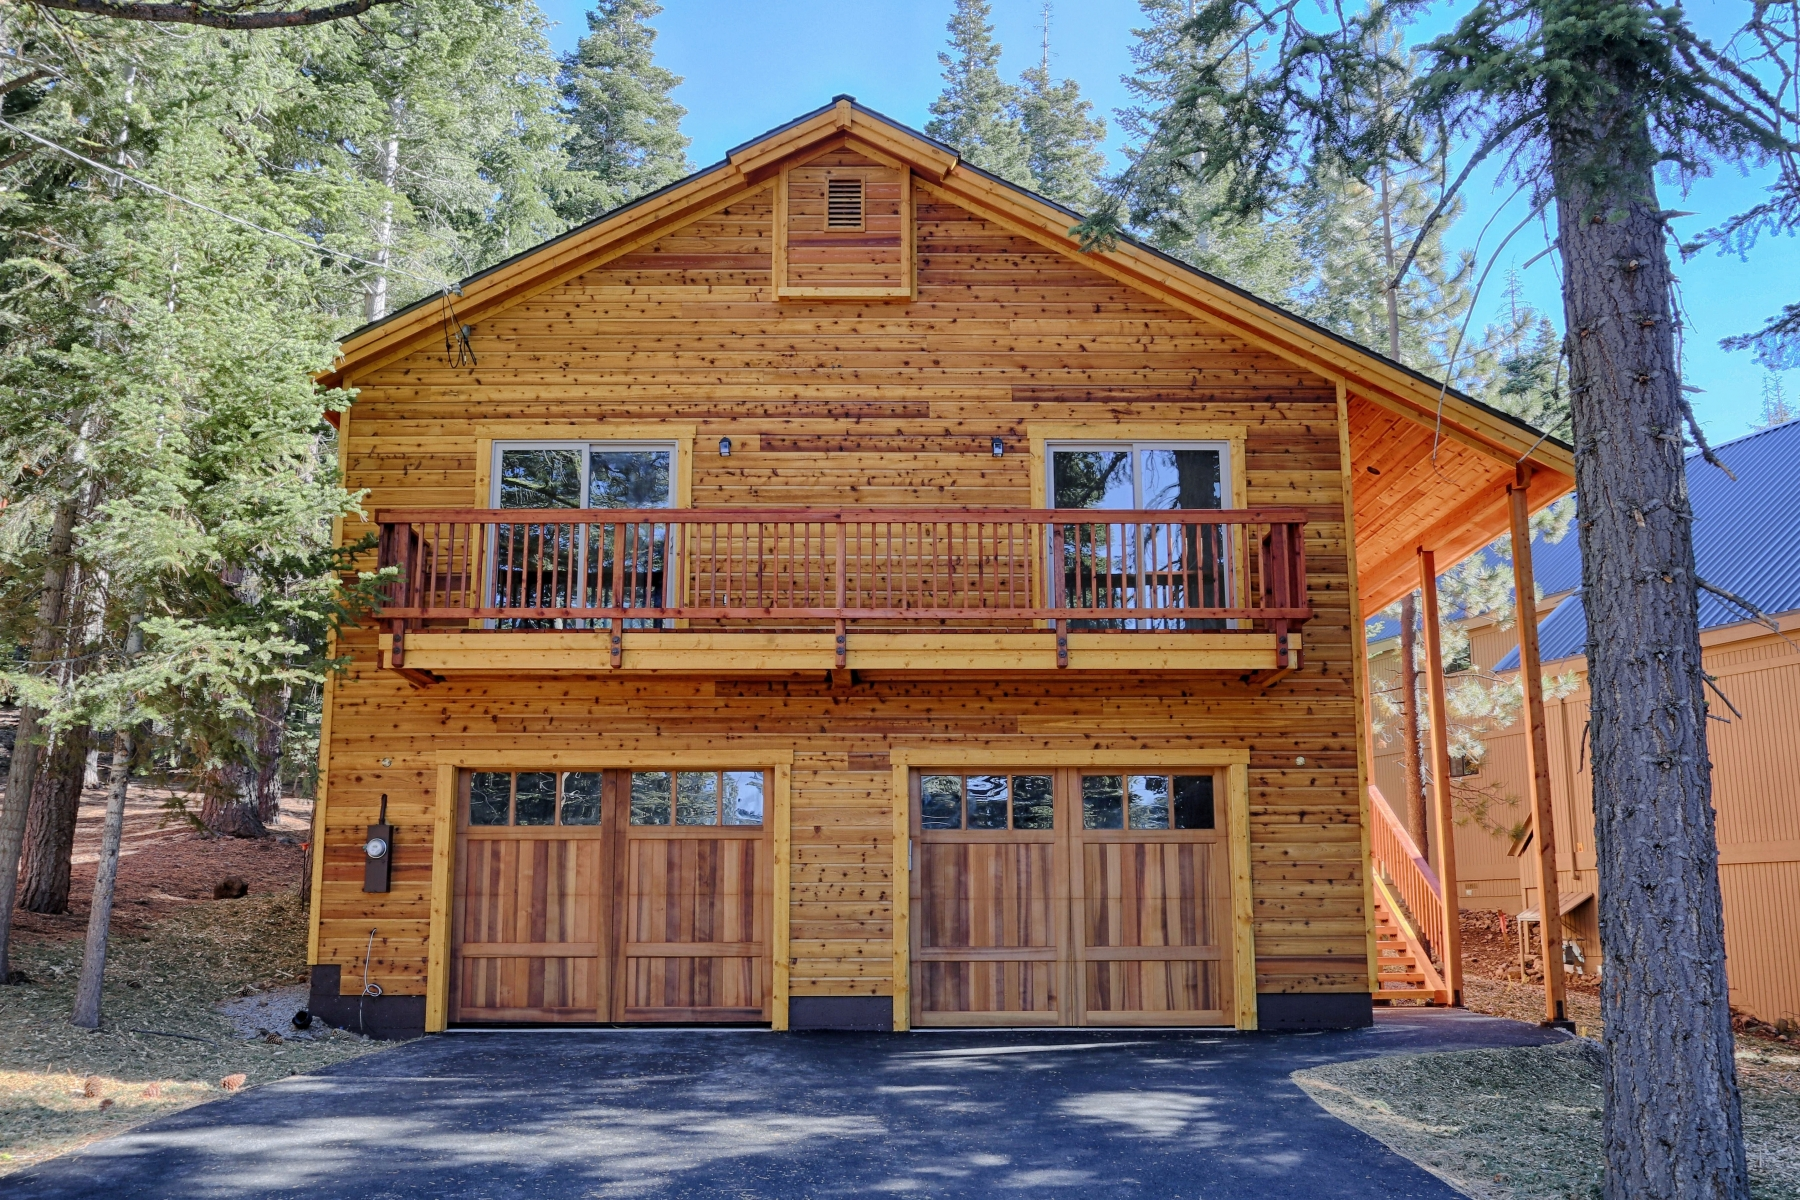 Single Family Home for Active at 11511 Sitzmark Way, Truckee, CA 11511 Sitzmark Way Truckee, California 96161 United States